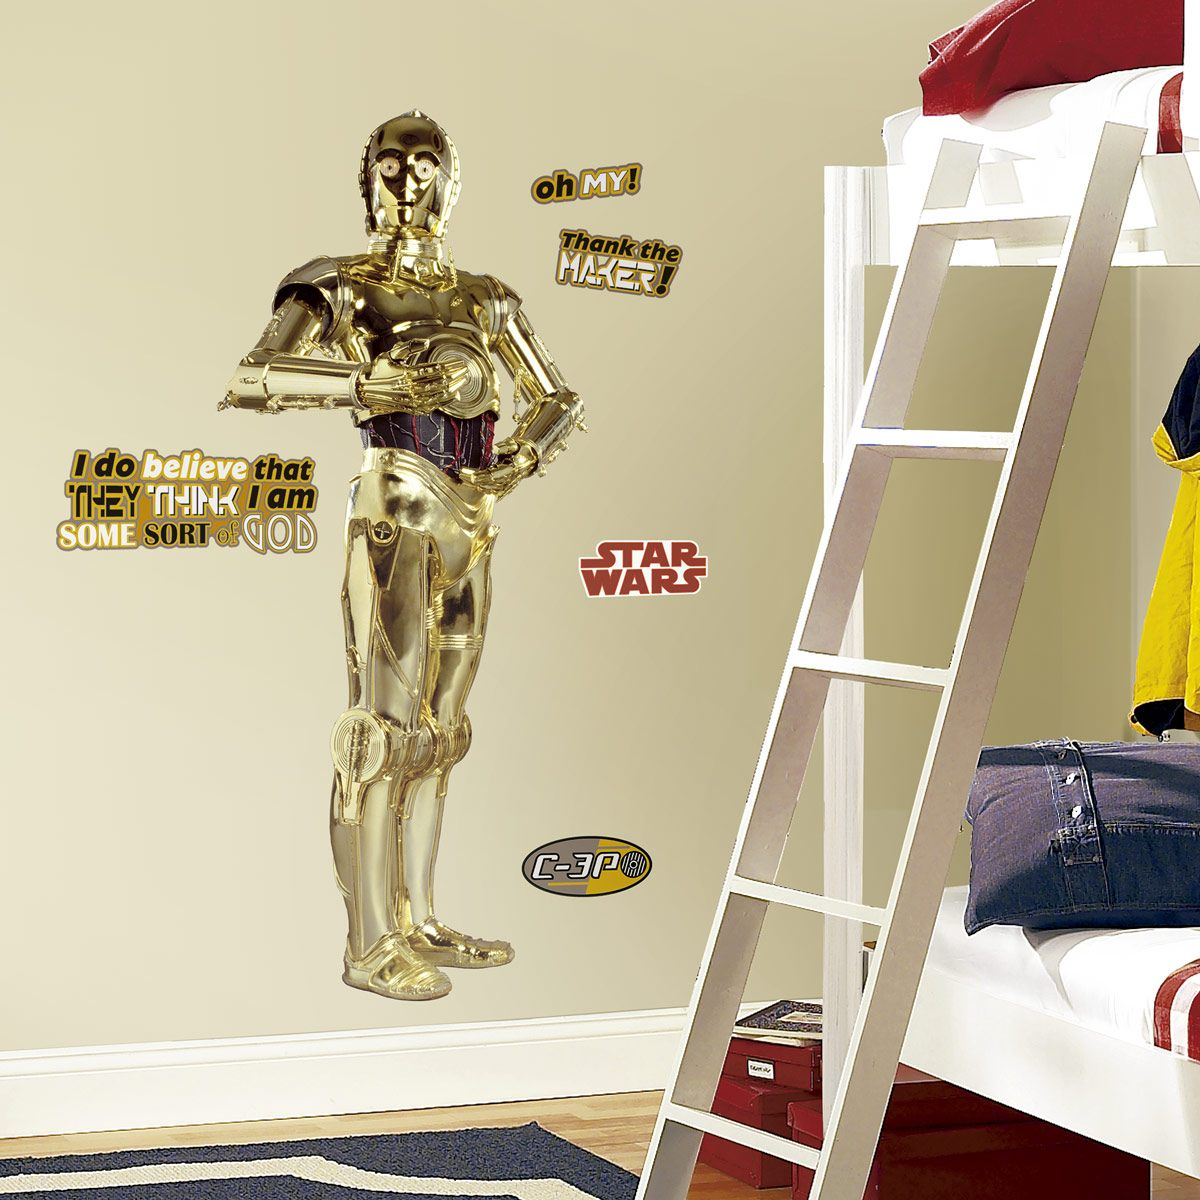 riesen c3po wandtattoo. Black Bedroom Furniture Sets. Home Design Ideas